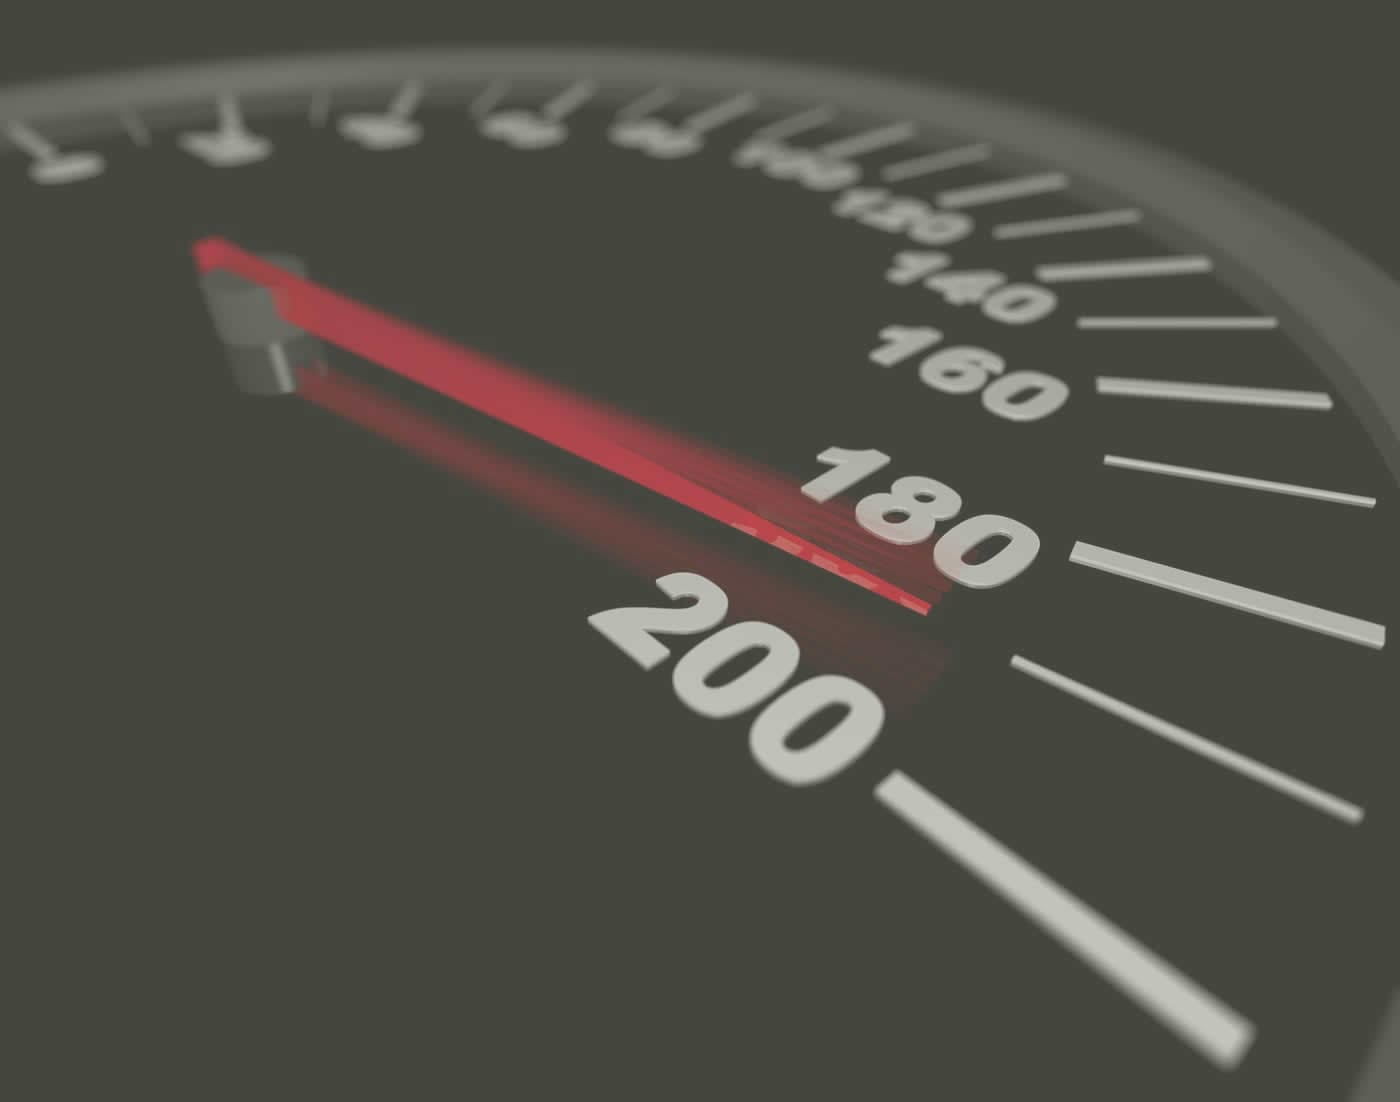 excessive high speed offences